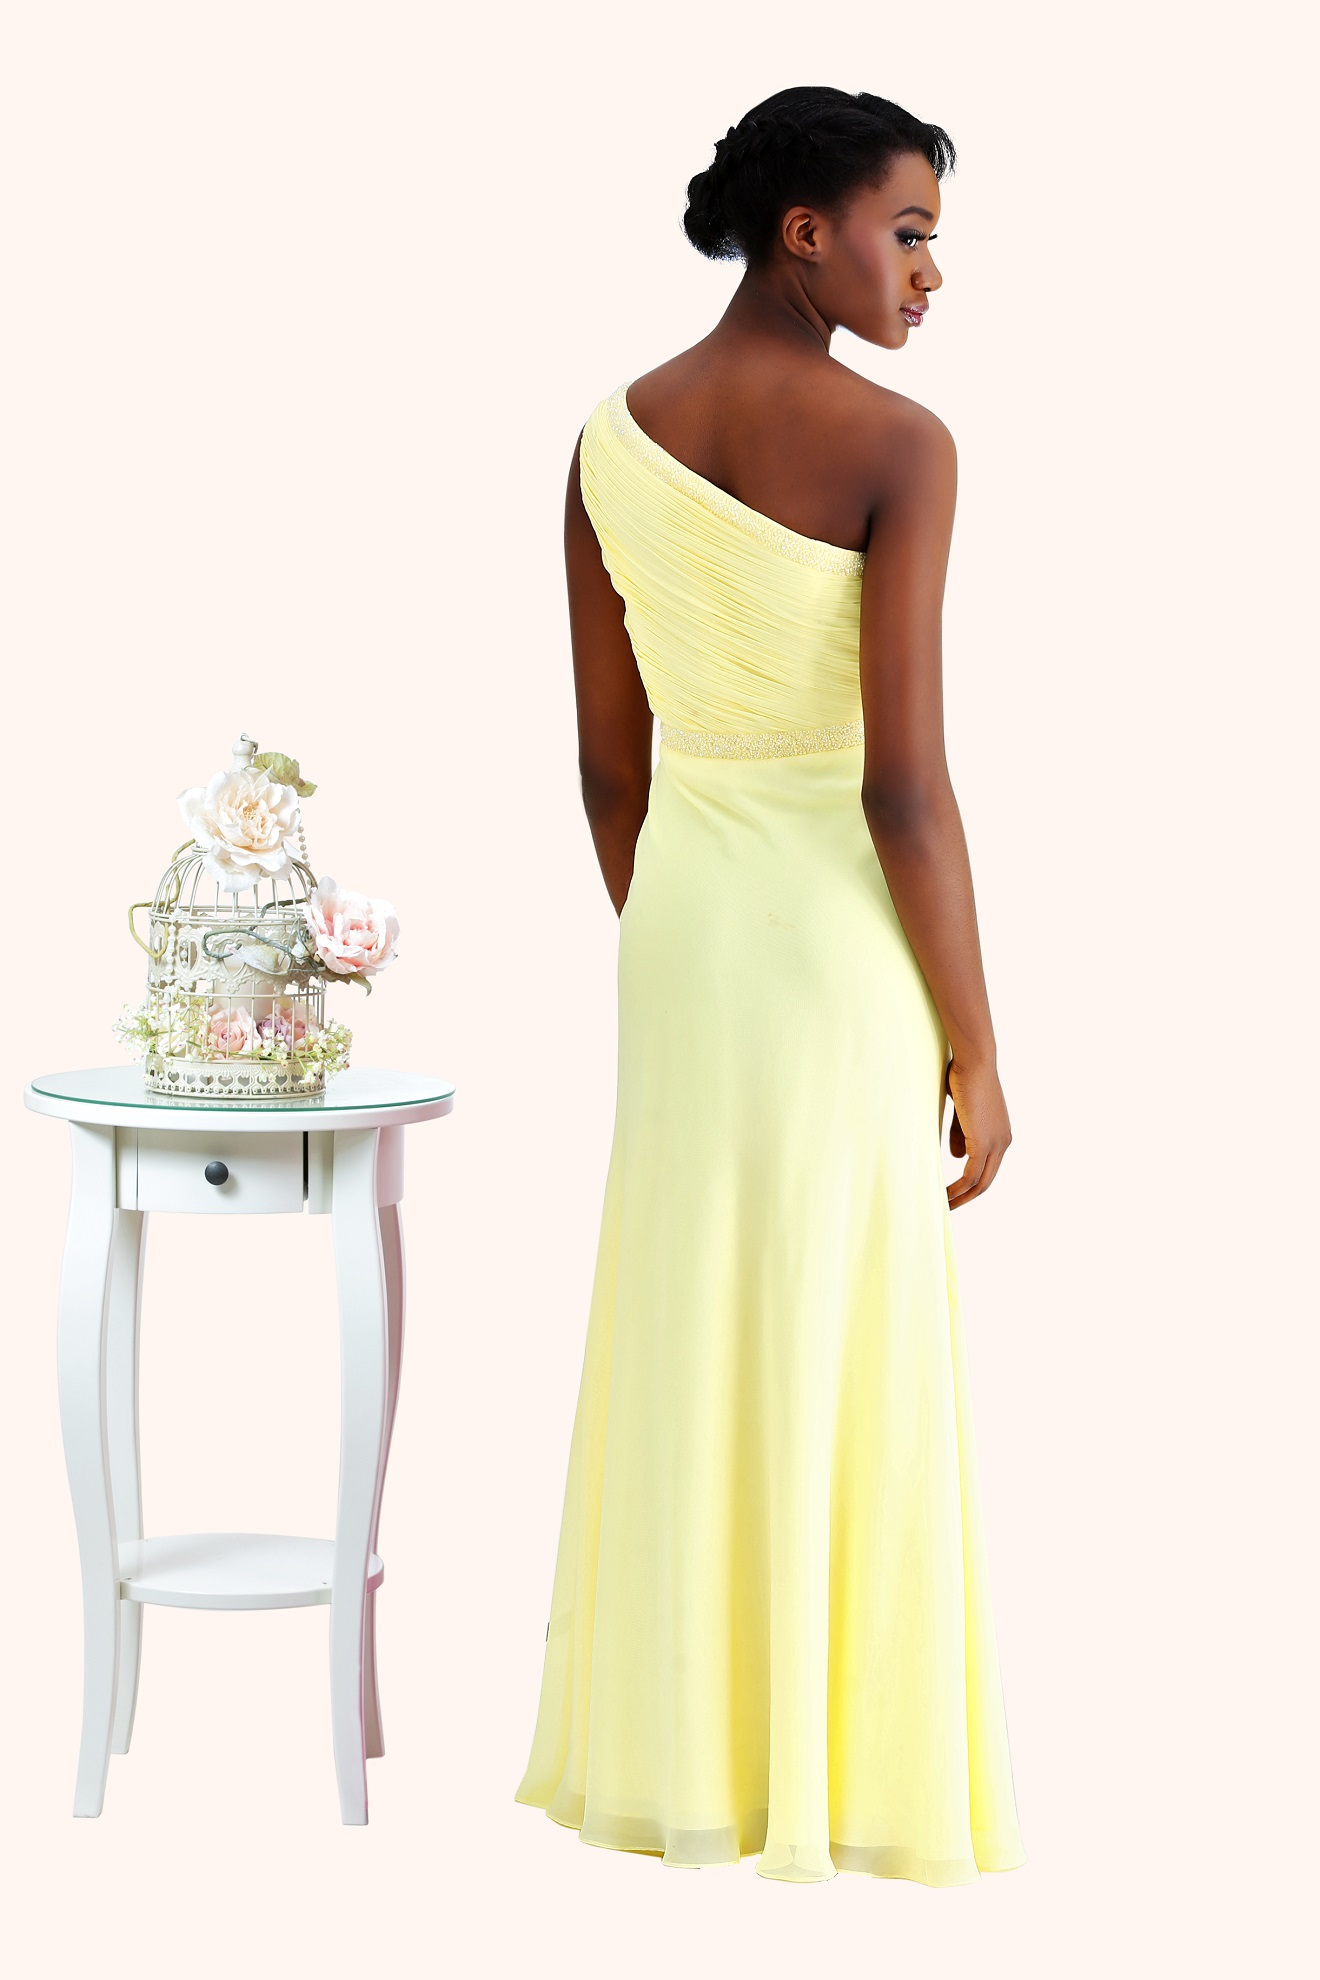 Estilo Moda Milton Keynes Dani One Shoulder beaded waist detail Long length chiffon A-line skirt yellow prom dress back. One shoulder sheath evening dress, bridesmaid dress or prom dress with a beaded neckline and waist detail